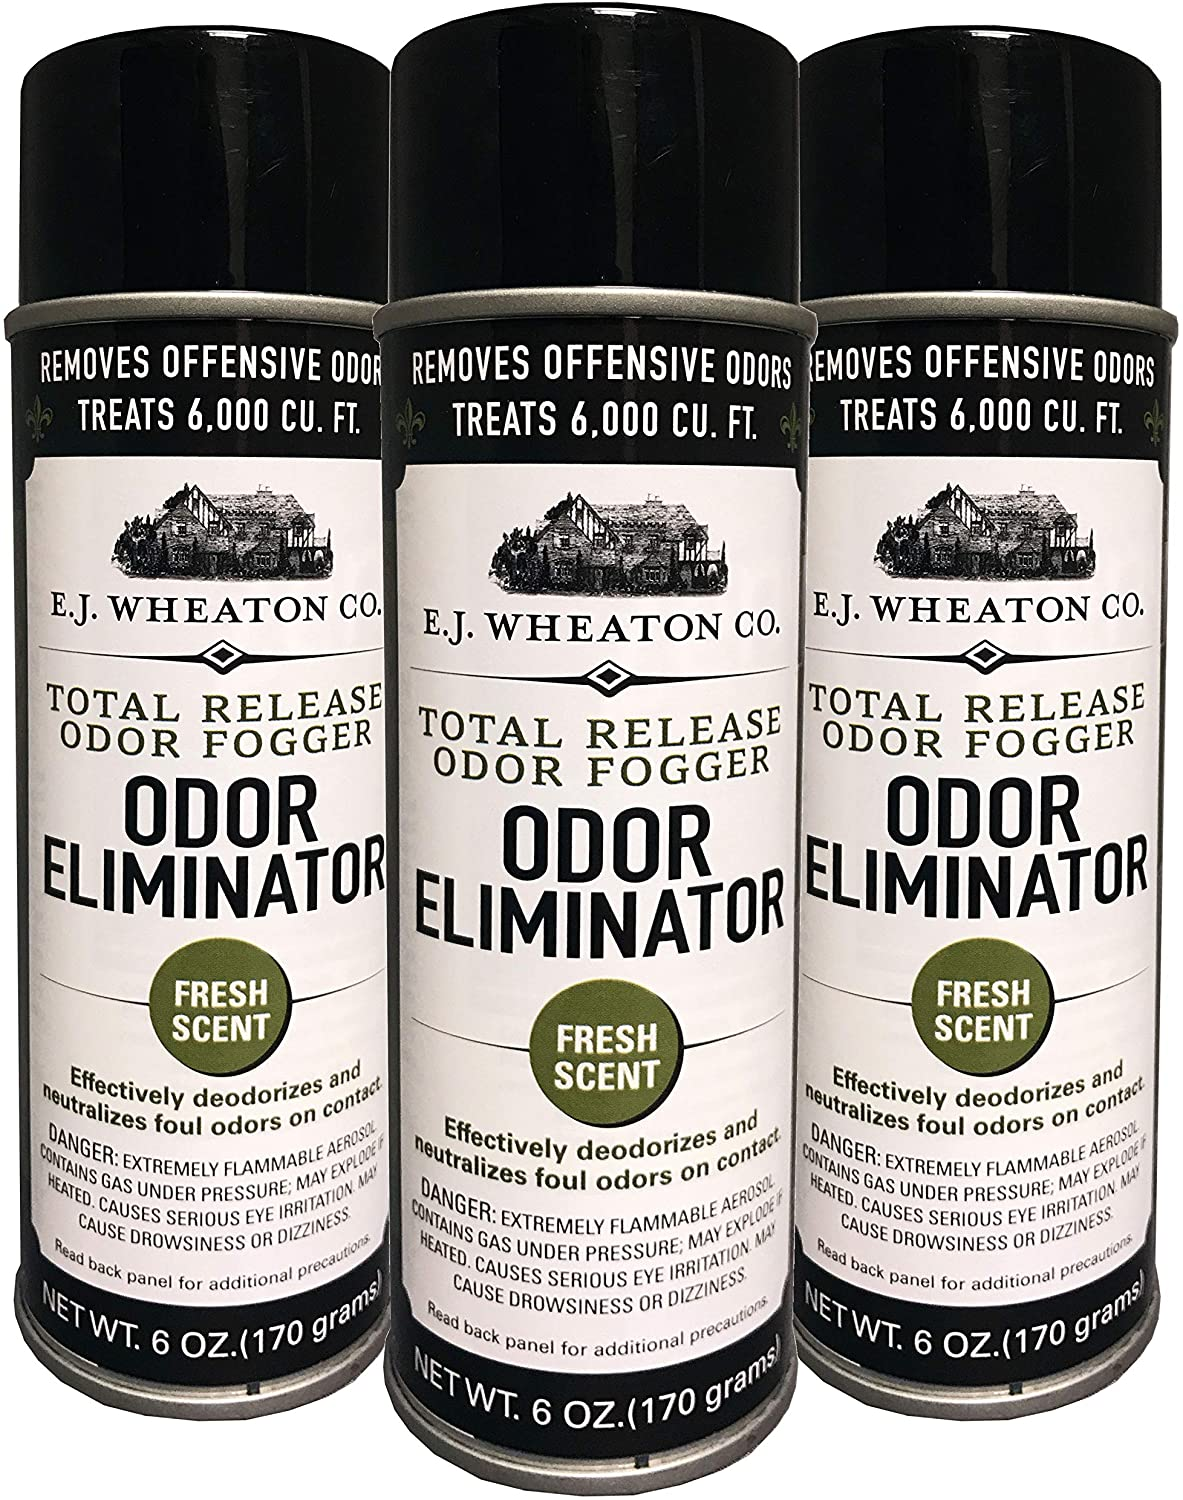 E.J. Wheaton Co. Odor Eliminator, Total Release Odor Fogger, 3 Pack, Effectively Deodorizes and Neutralizes Foul Odors on Contact, Fresh Scent (6 OZ)